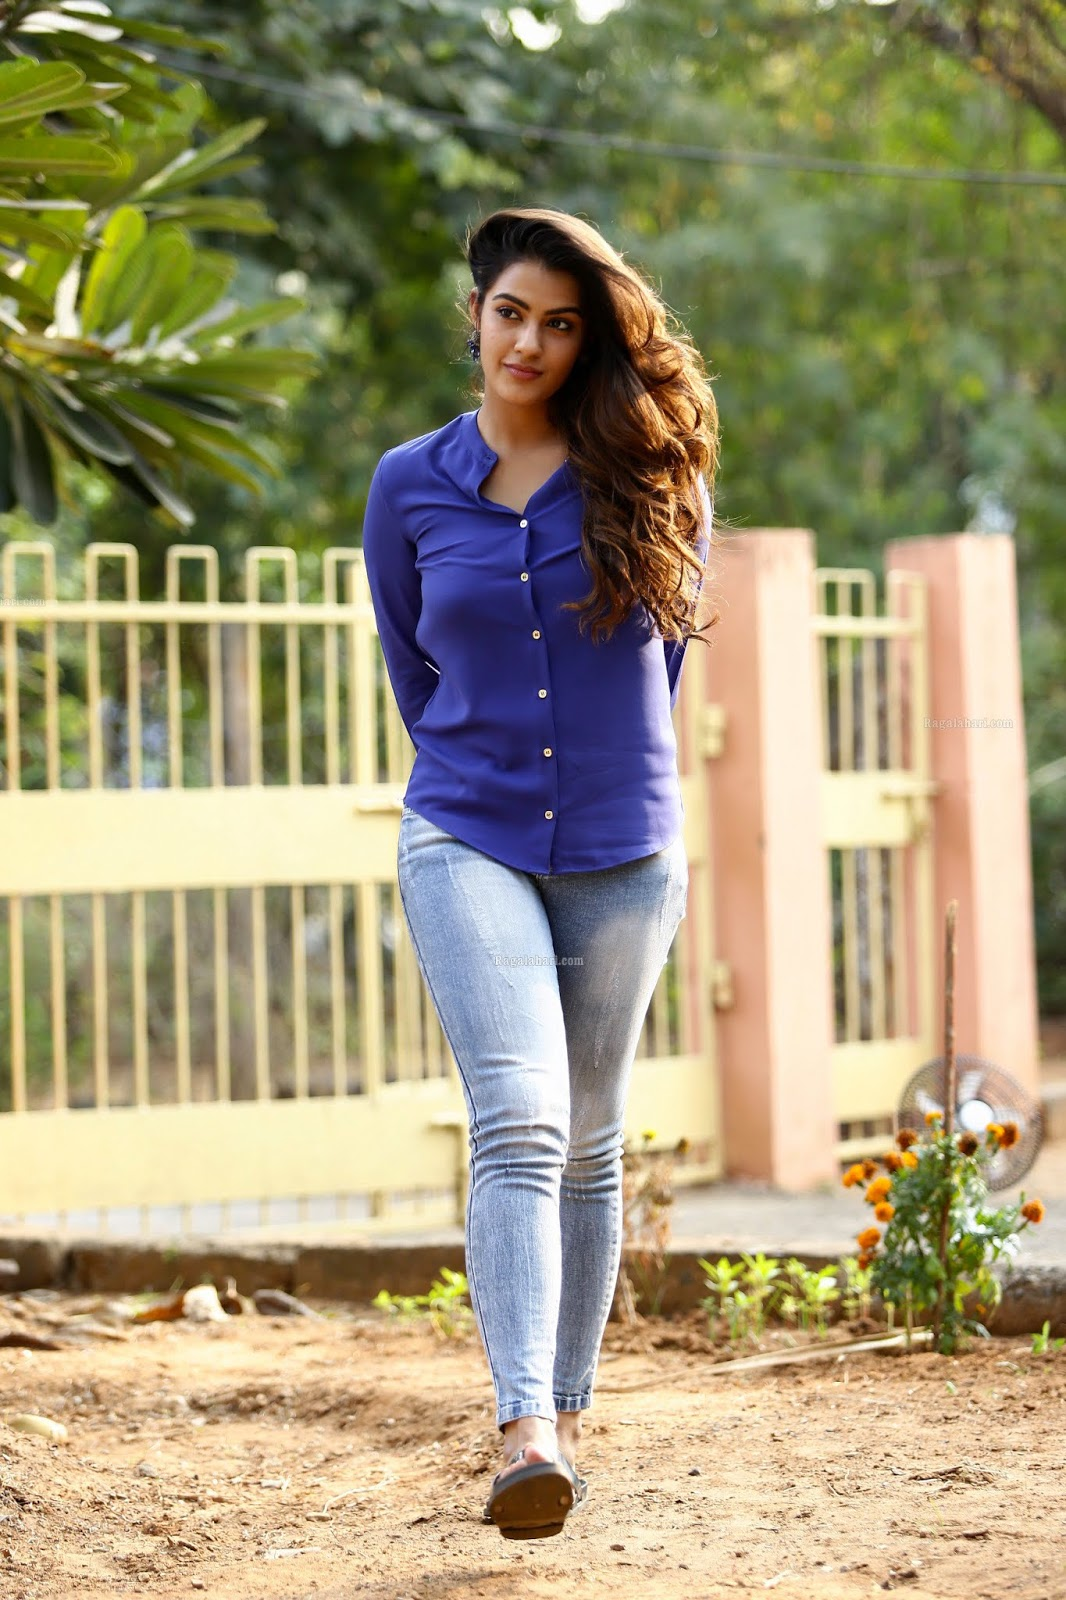 Beauty Galore Hd Kavya Thapar Latest Glamorous Photos In